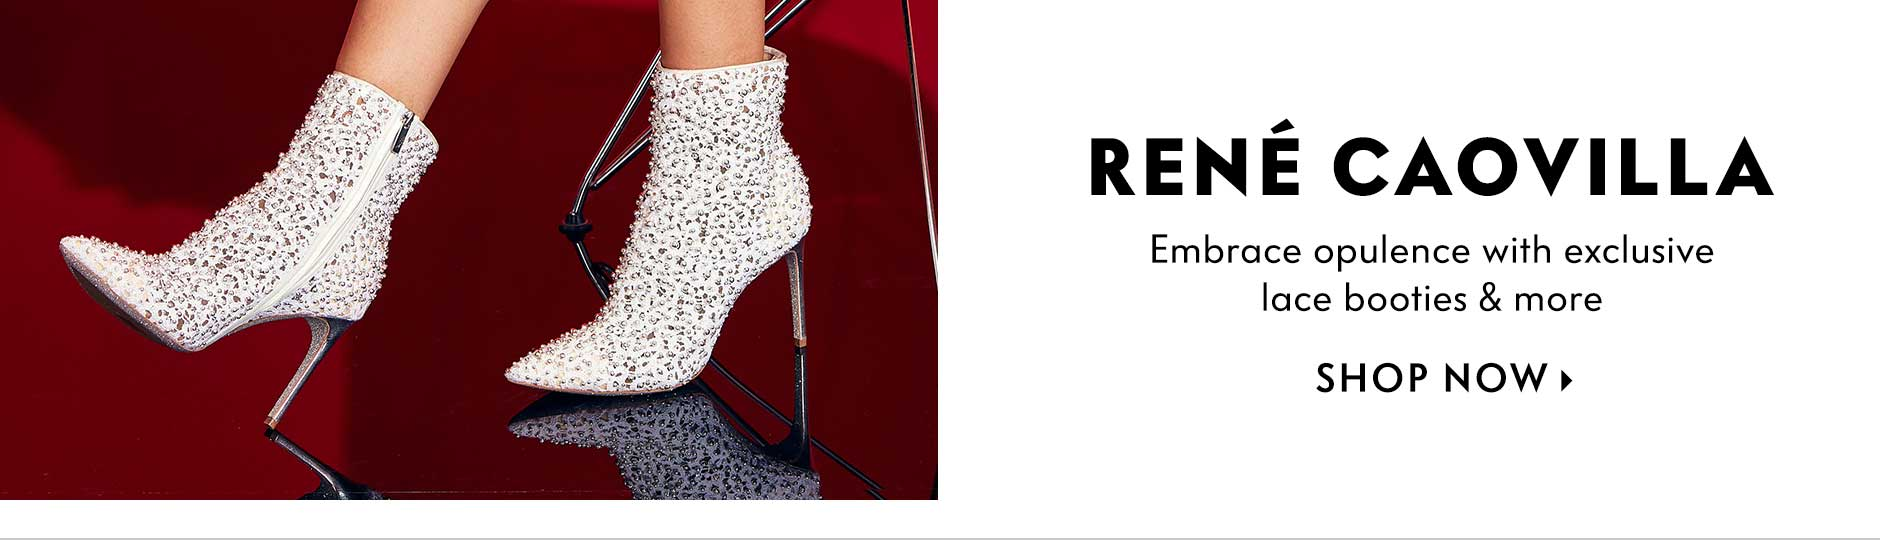 Rene Caovilla - Embrace opulence with exclusive lace booties & more